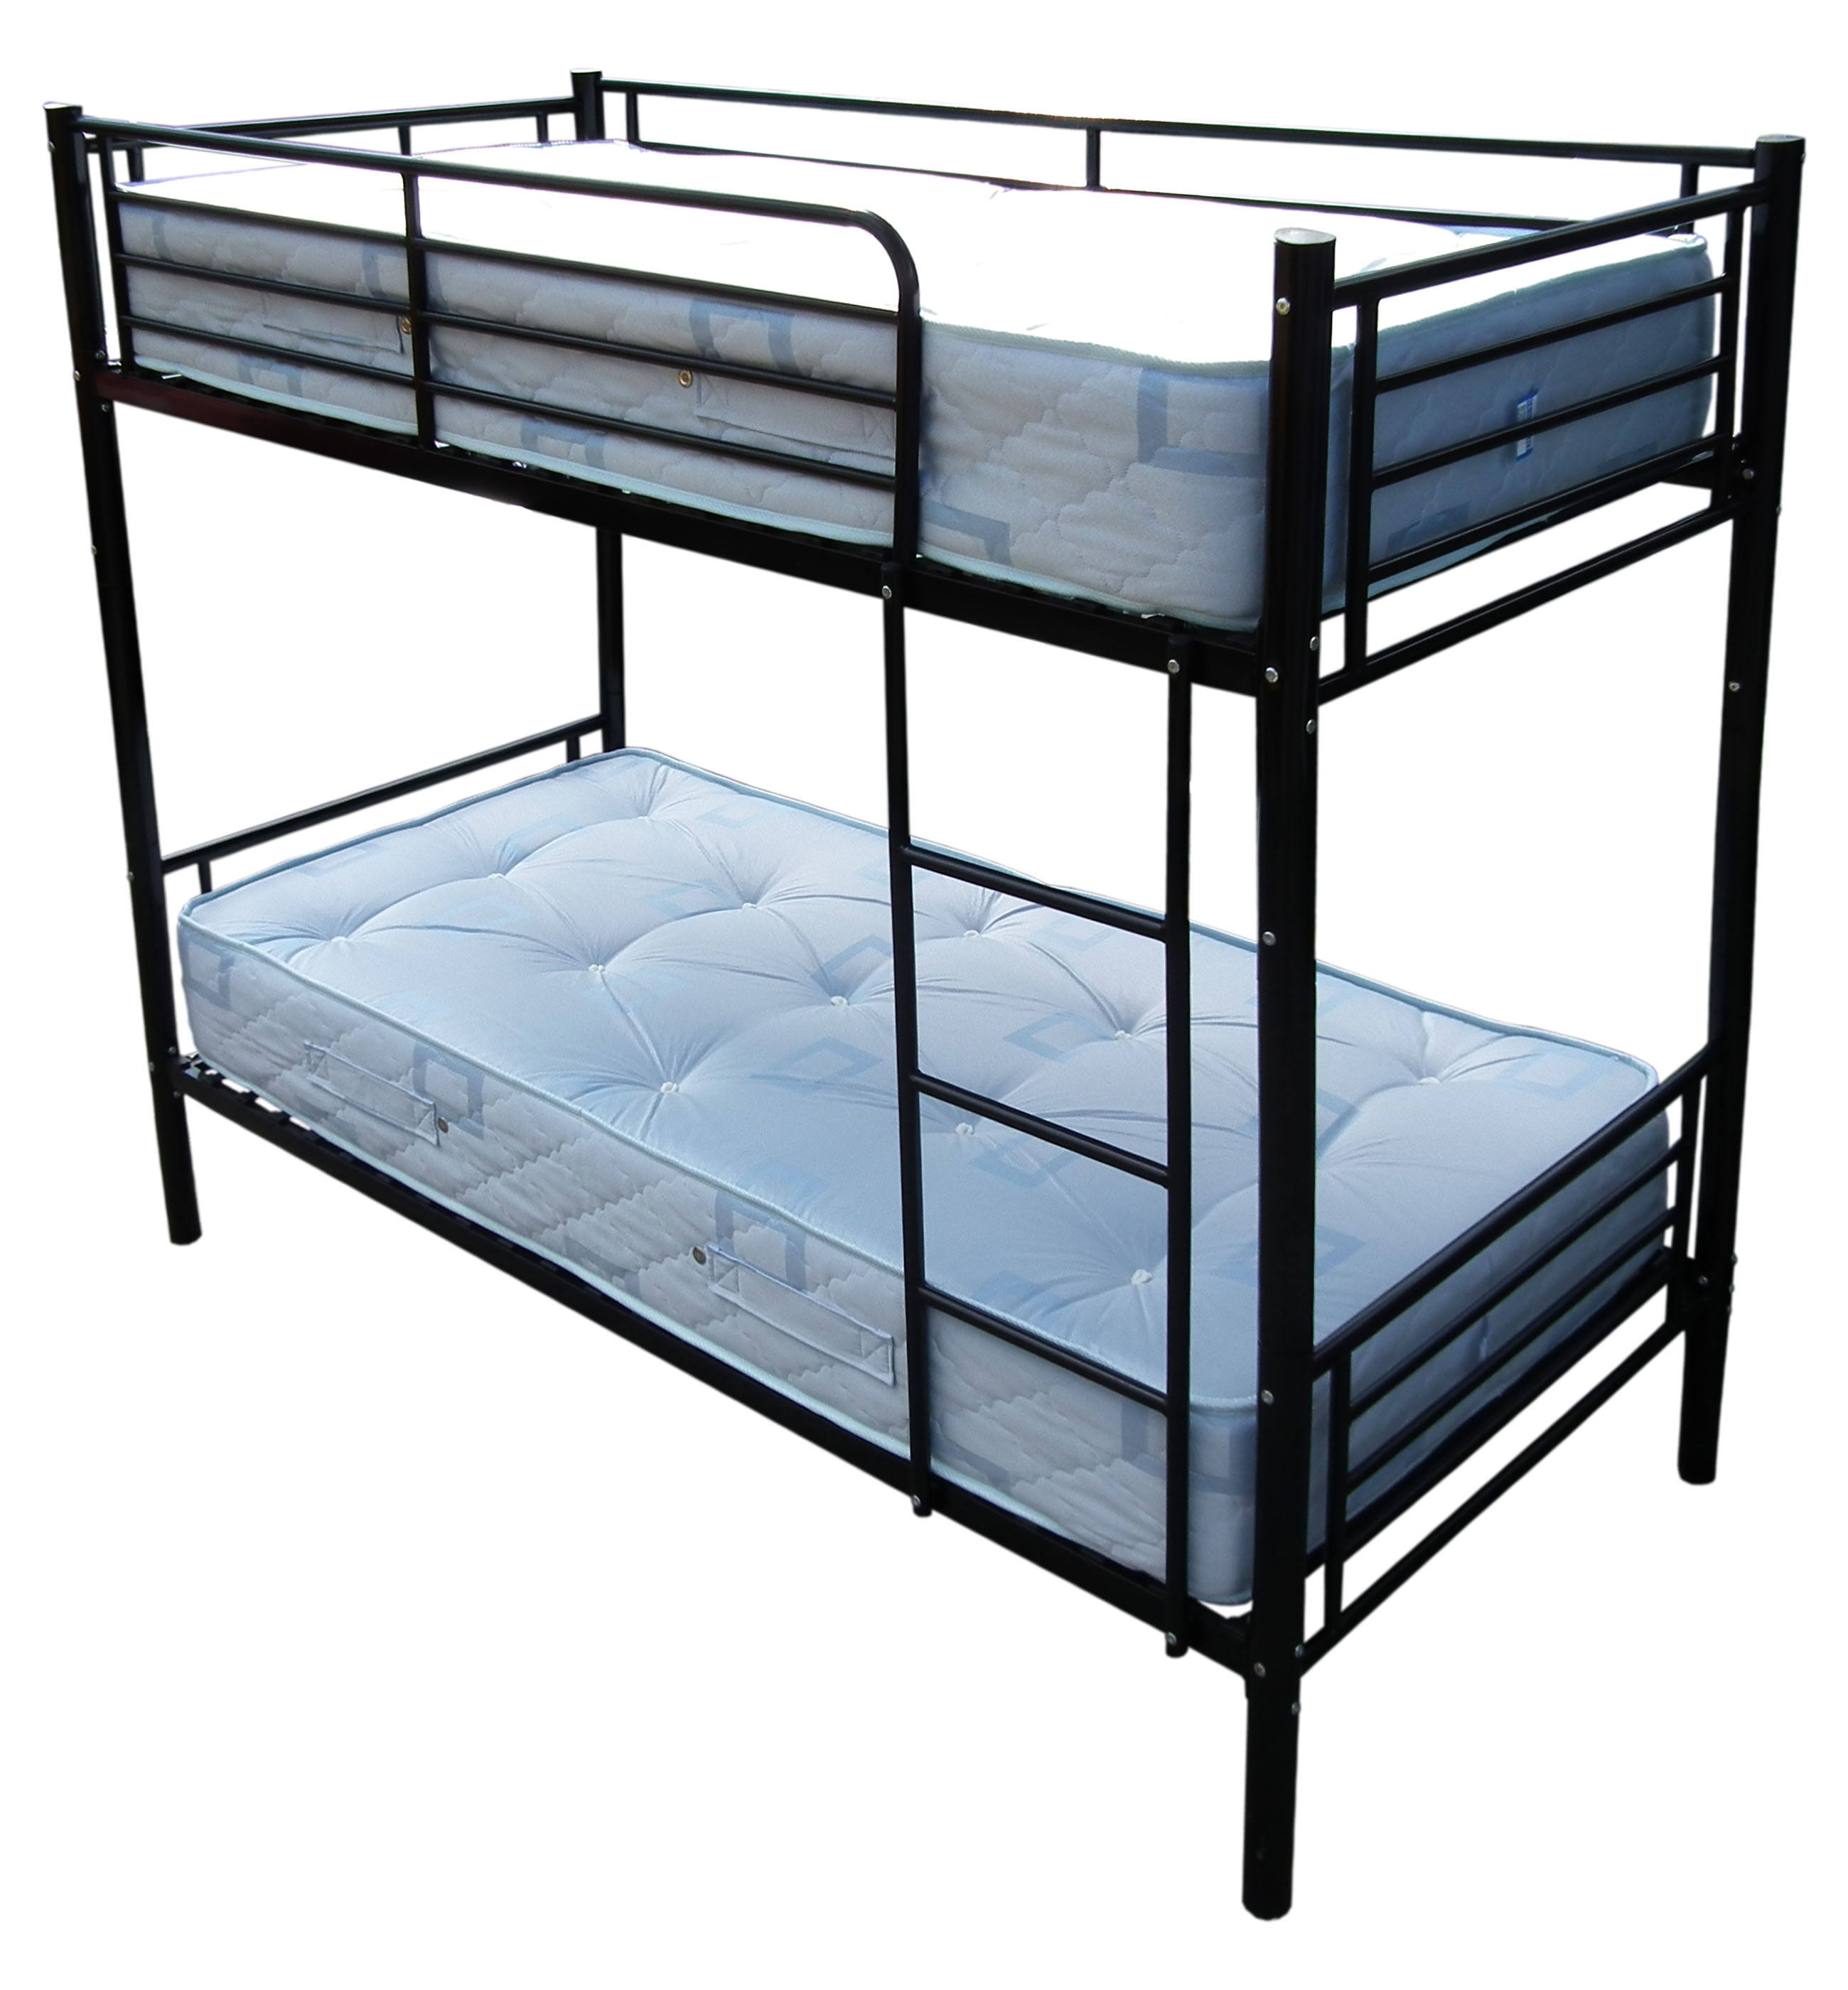 School Hostel Metal bed Furniture Dormitory Space Saving Modern Folding Bunk Bed